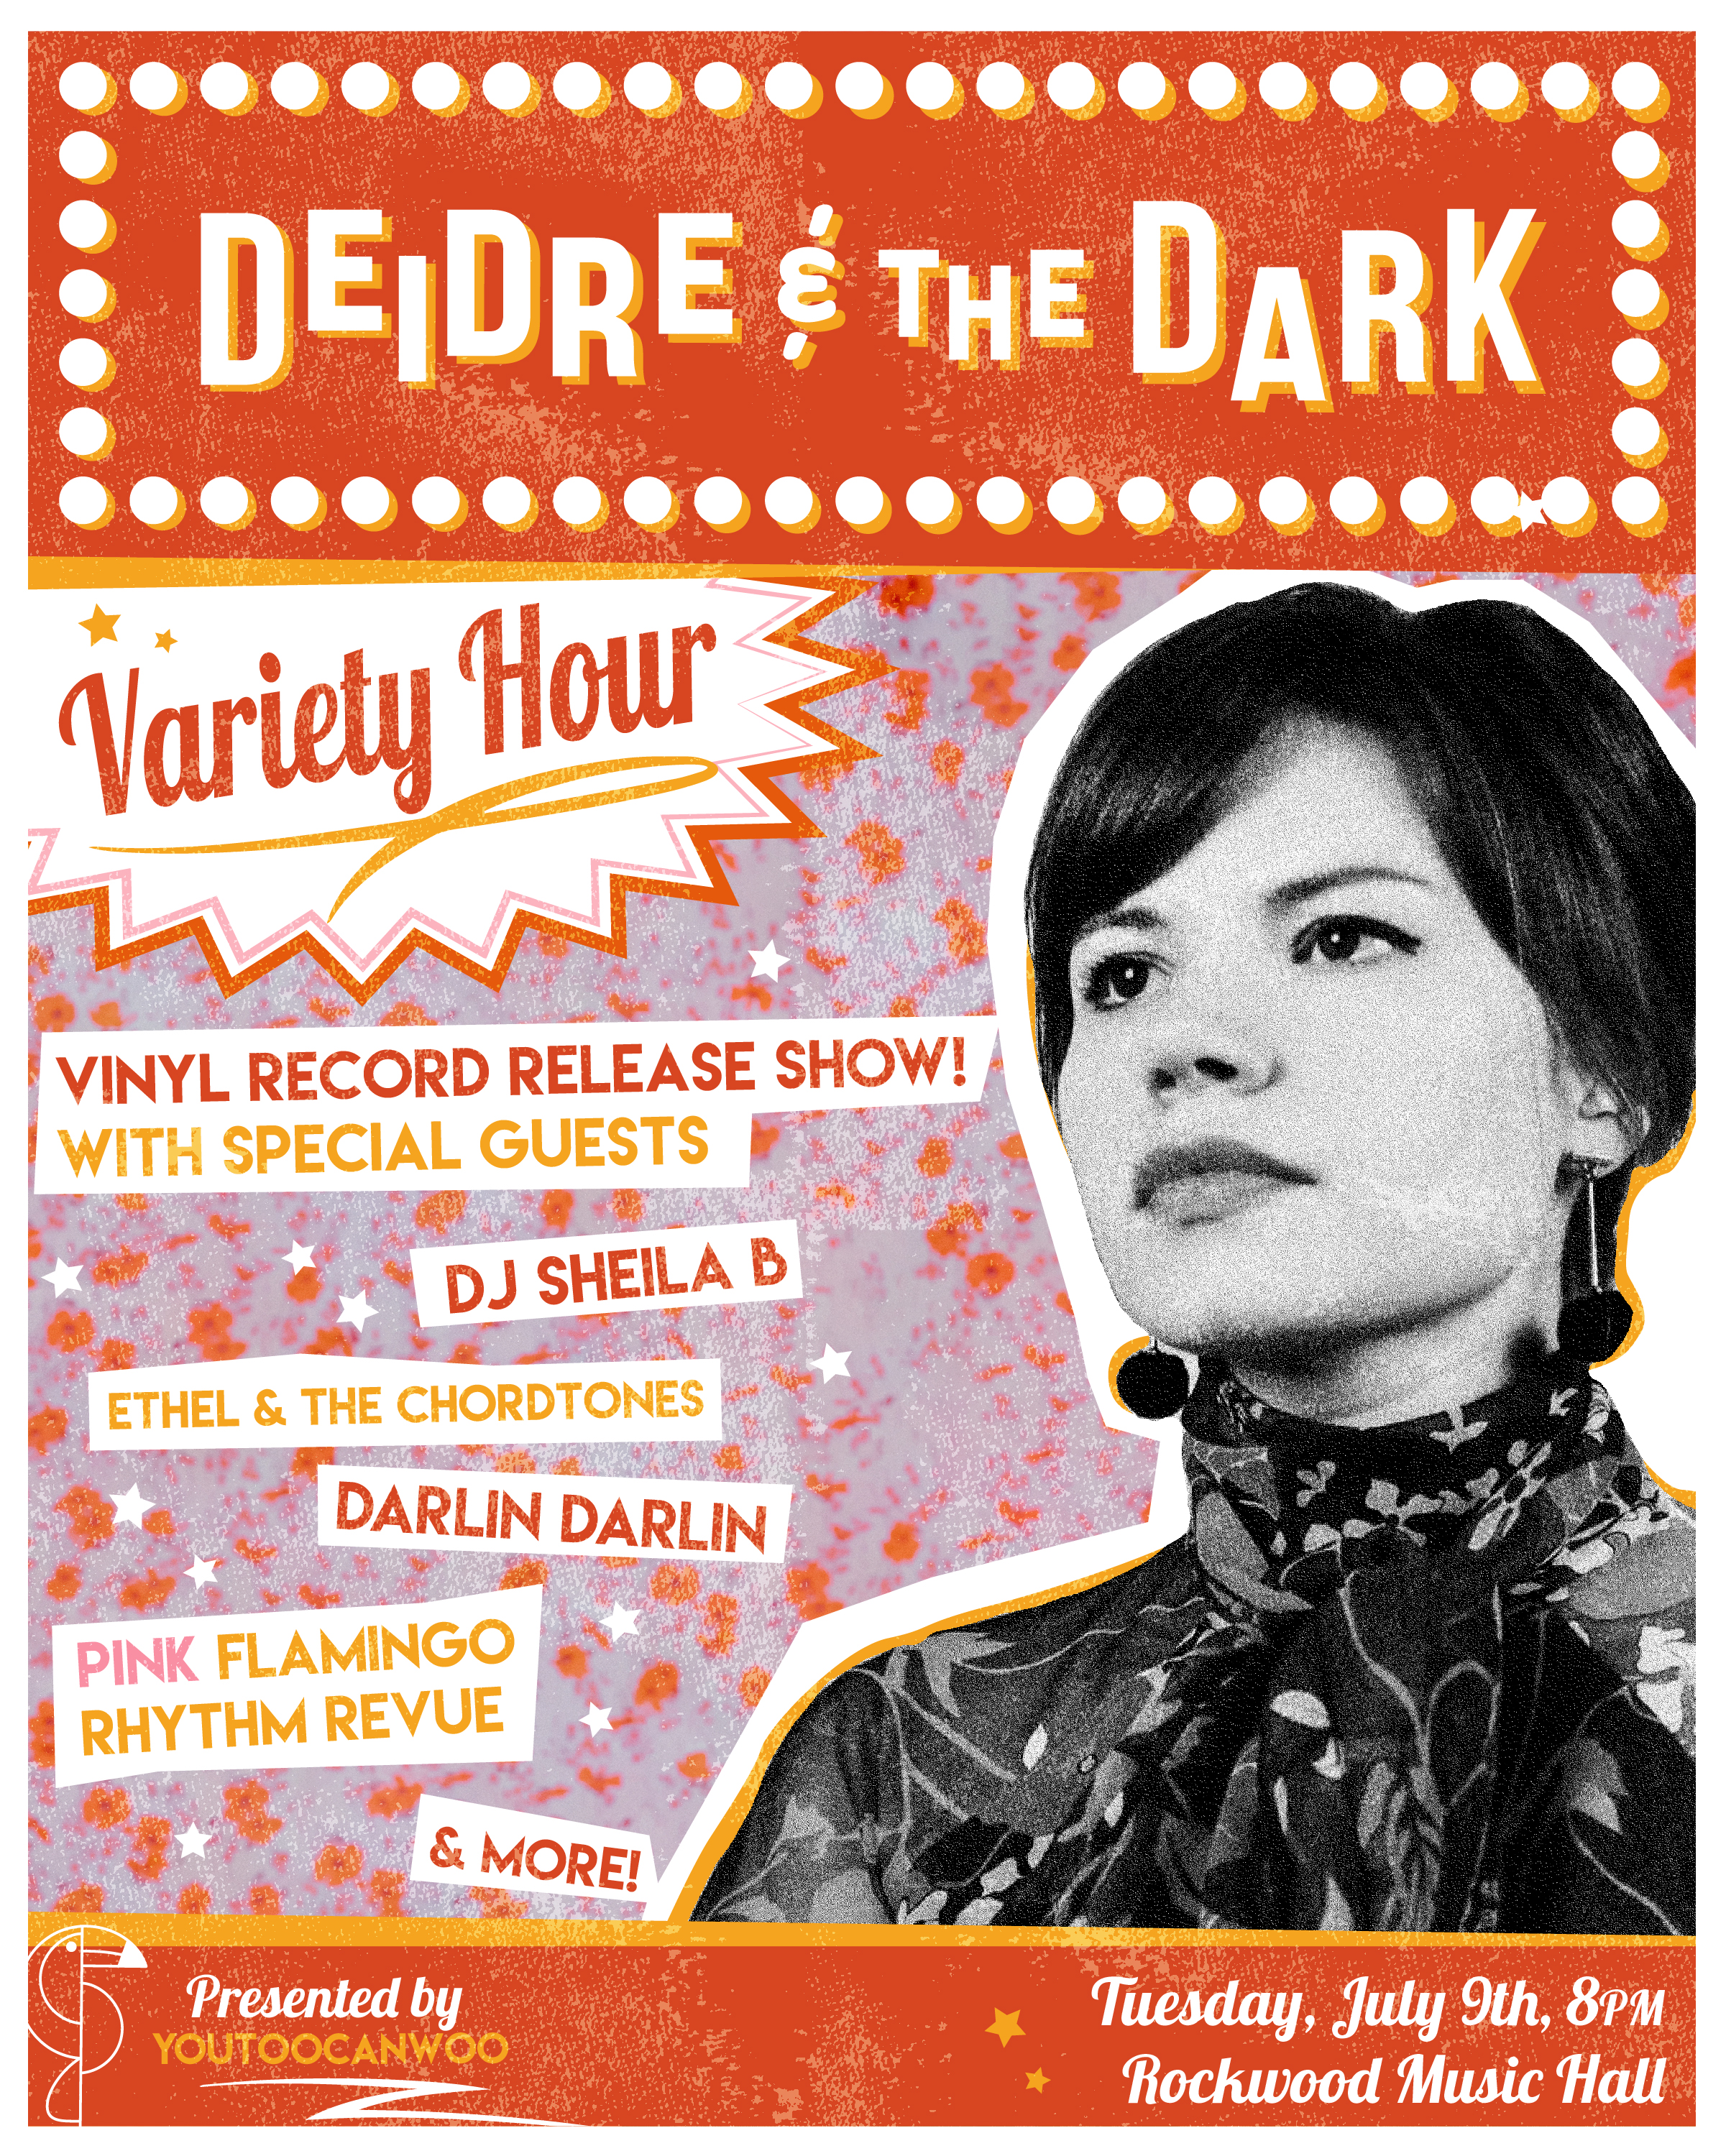 Deidre and the Dark's Variety Hour-8x10SOC.jpg